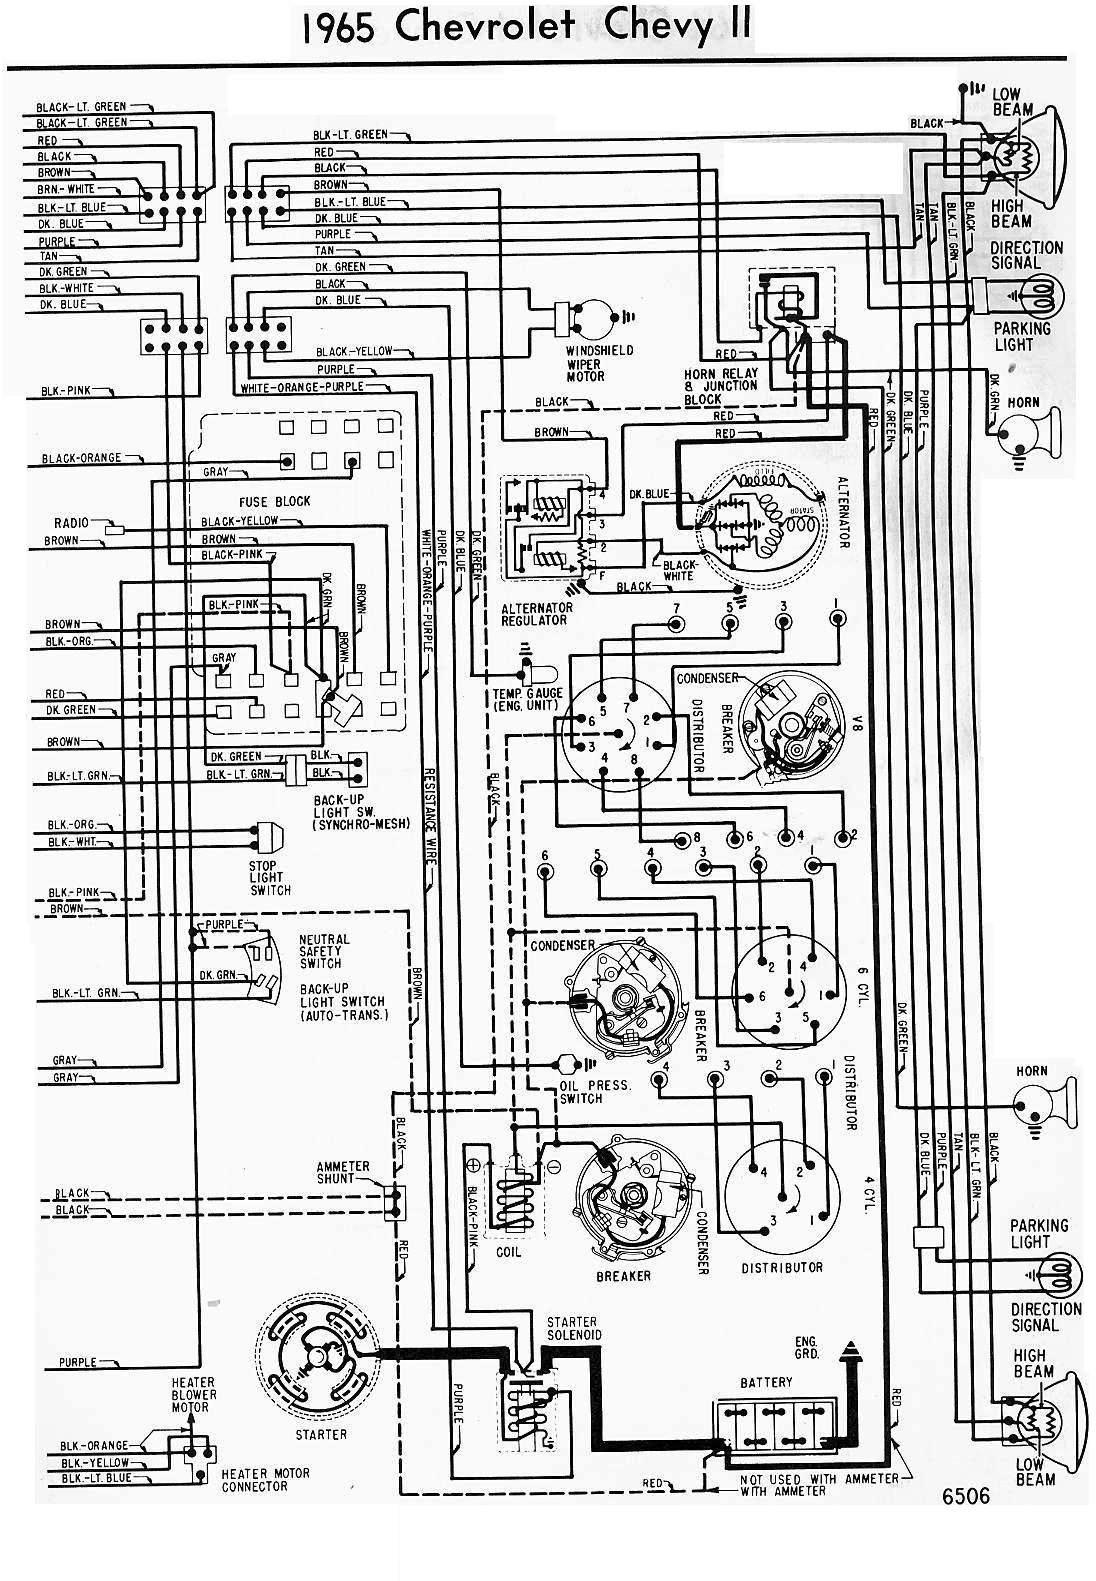 1965 Gm Stereo Wiring Diagram Free For You Buick Radio Diagrams Chevrolet Chevy Ii All About Lucerne